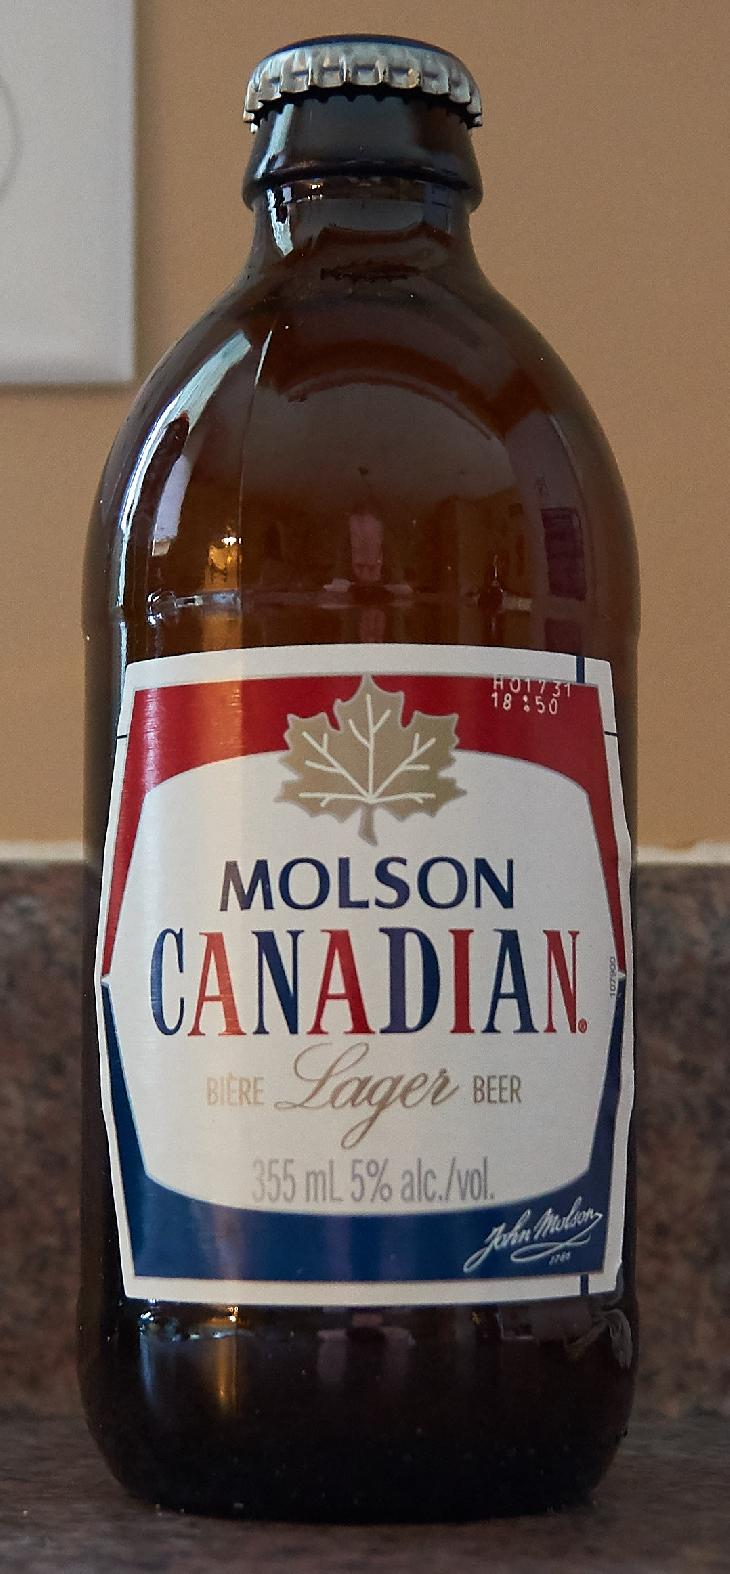 This is a special edition Molson Canadian stubby was released to celebrate Canada's 150th birthday.